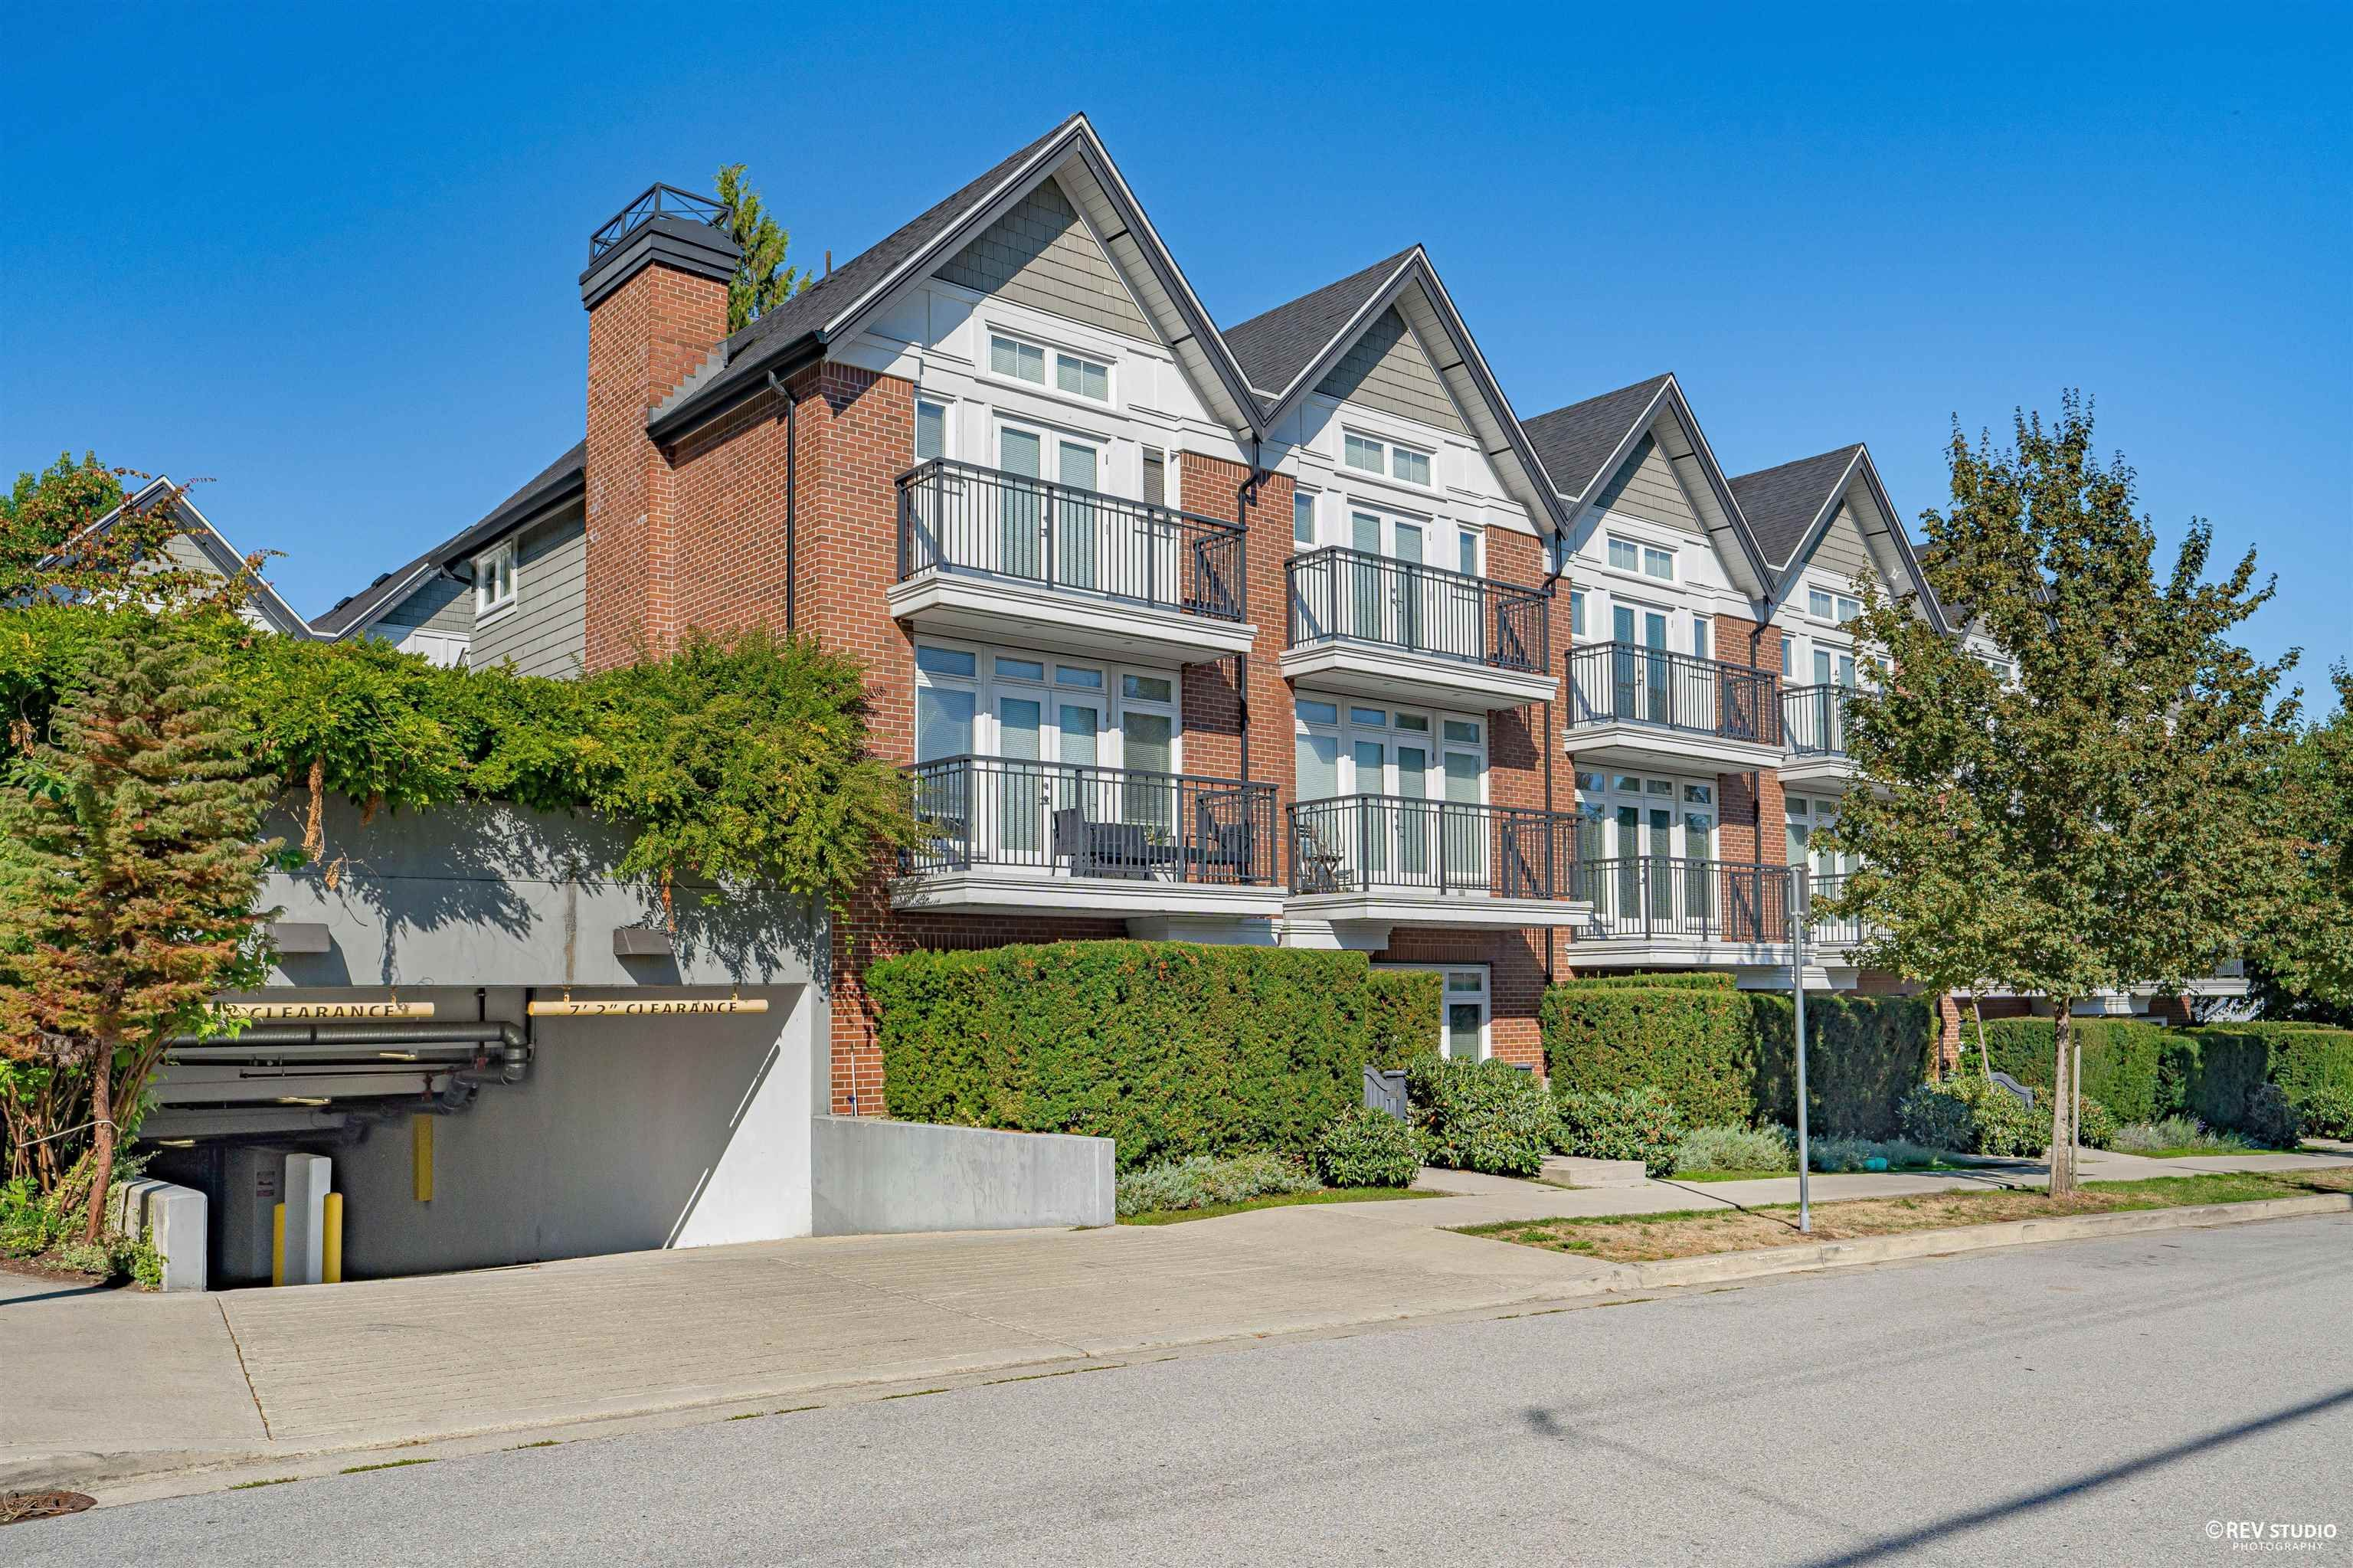 """Main Photo: 1 5655 CHAFFEY Avenue in Burnaby: Central Park BS Condo for sale in """"TOWNIE WALK"""" (Burnaby South)  : MLS®# R2615773"""